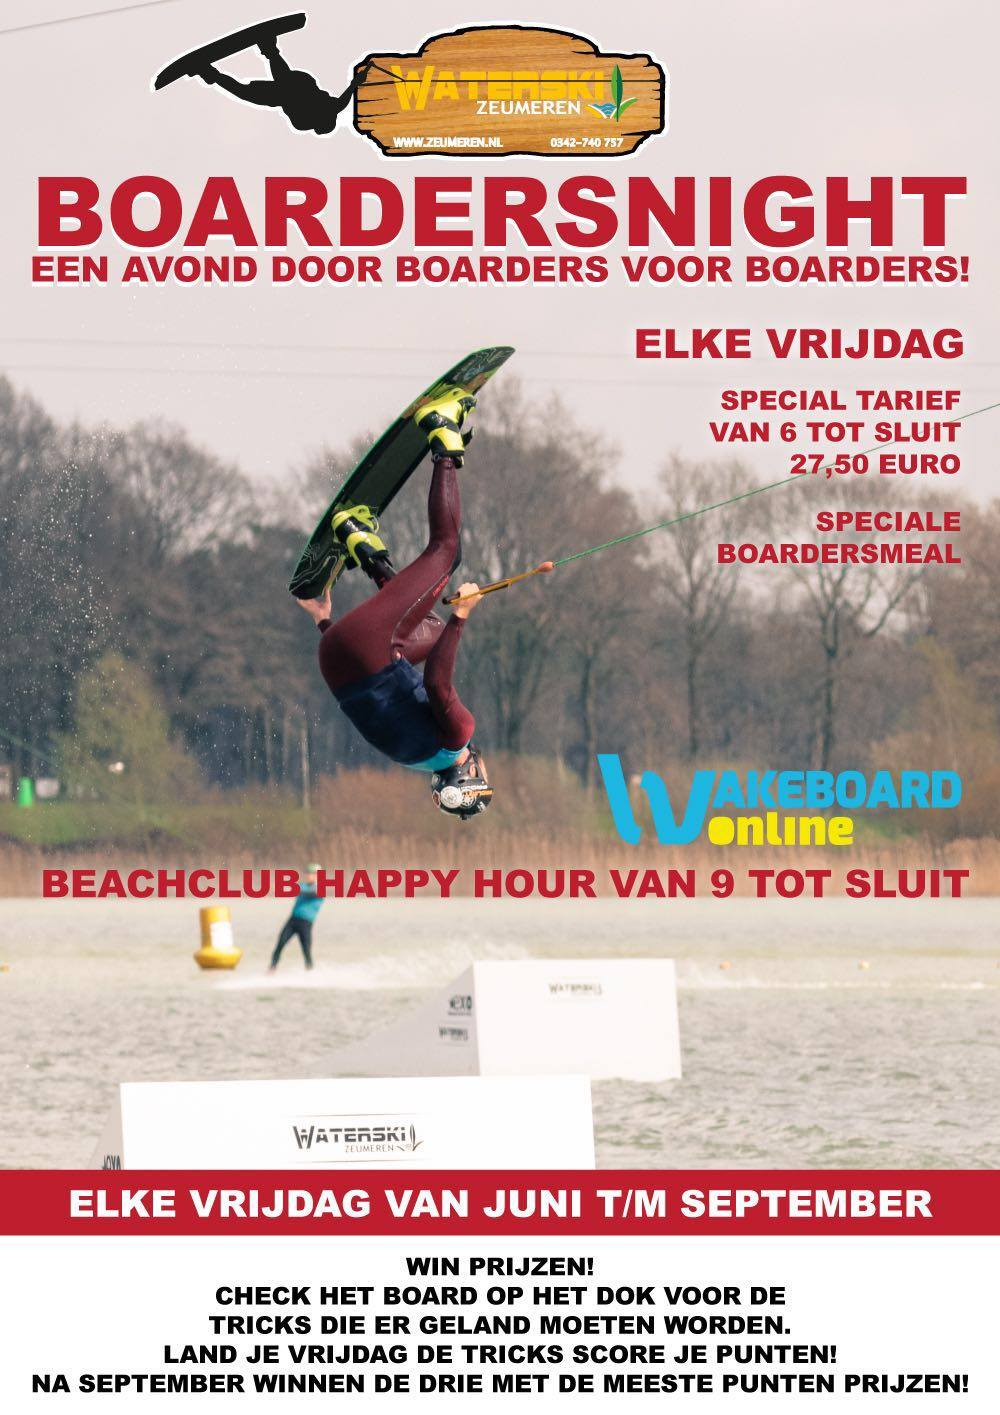 Boardersnight Zeumeren